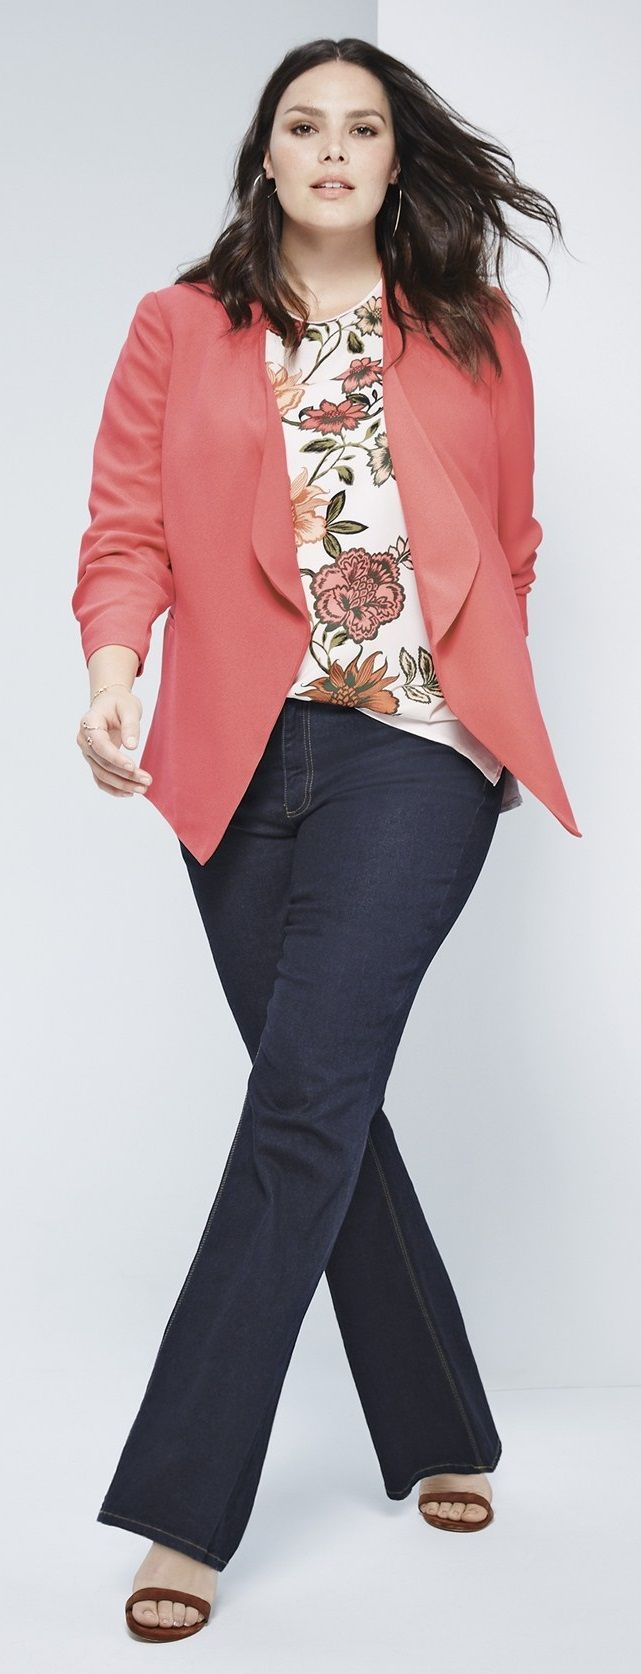 17 Best ideas about Plus Size Casual on Pinterest